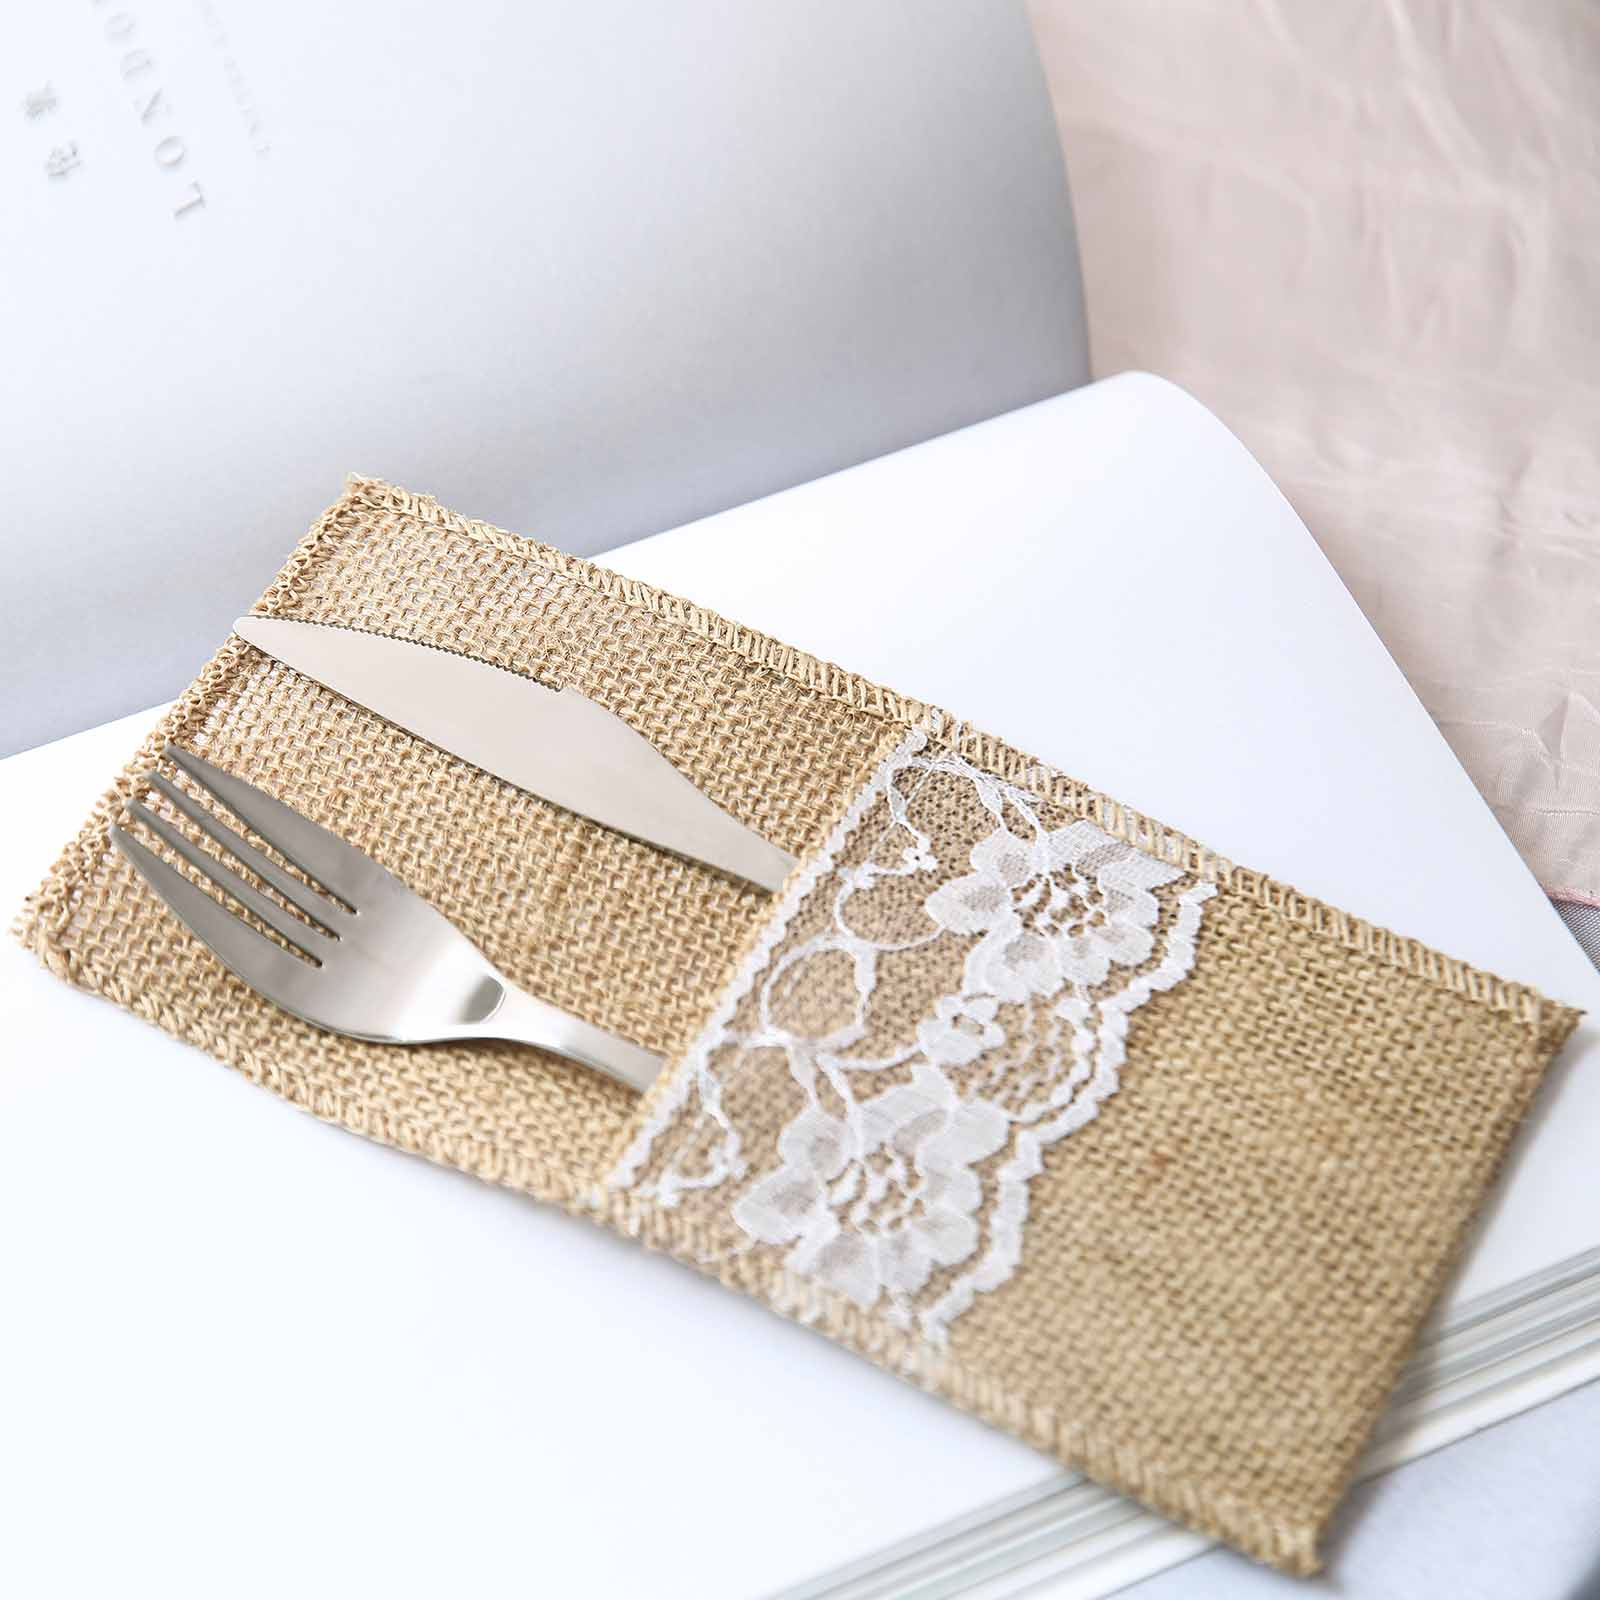 4 X8 Natural Burlap And Lace Napkin Holders For Wedding Party Favors Tableware Ebay